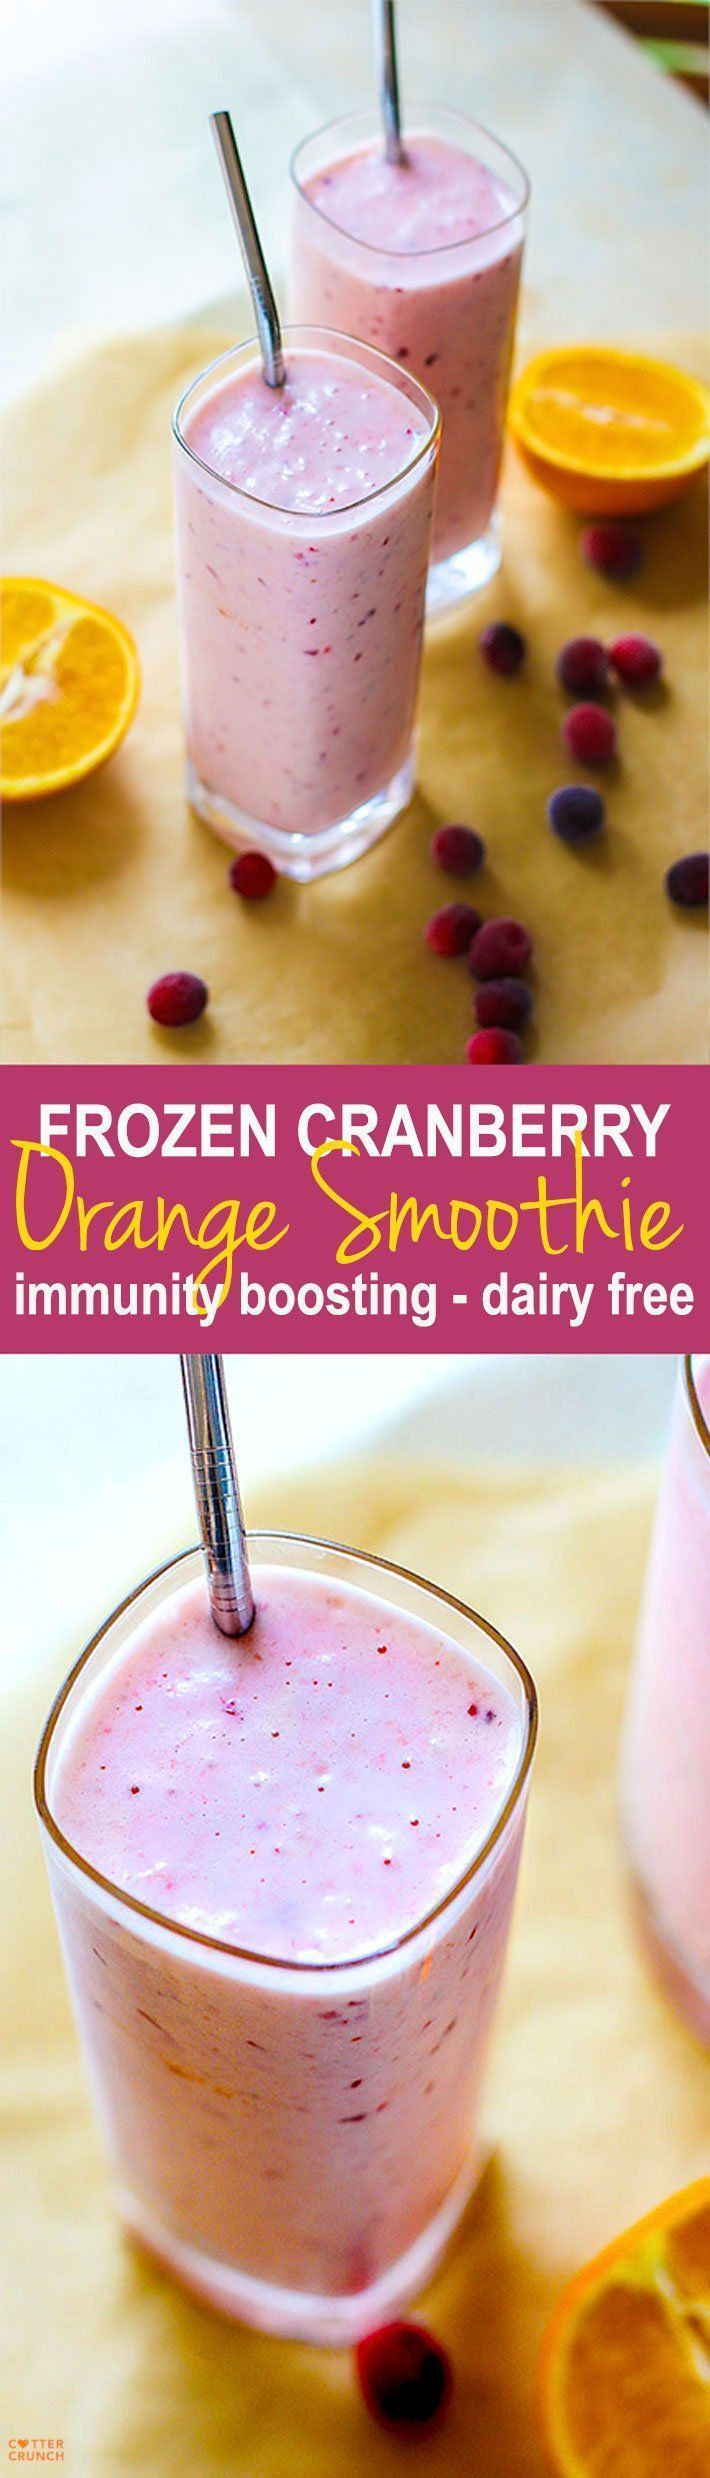 Vegan immunity boosting frozen cranberry orange smoothie! A triple whammy smoothie of Vitamin C without a ton of extra sugar. Just natural fruit sugars from orange and cranberry! Plus it's anti-oxidant rich and dairy free, not to mention tastes pretty dar